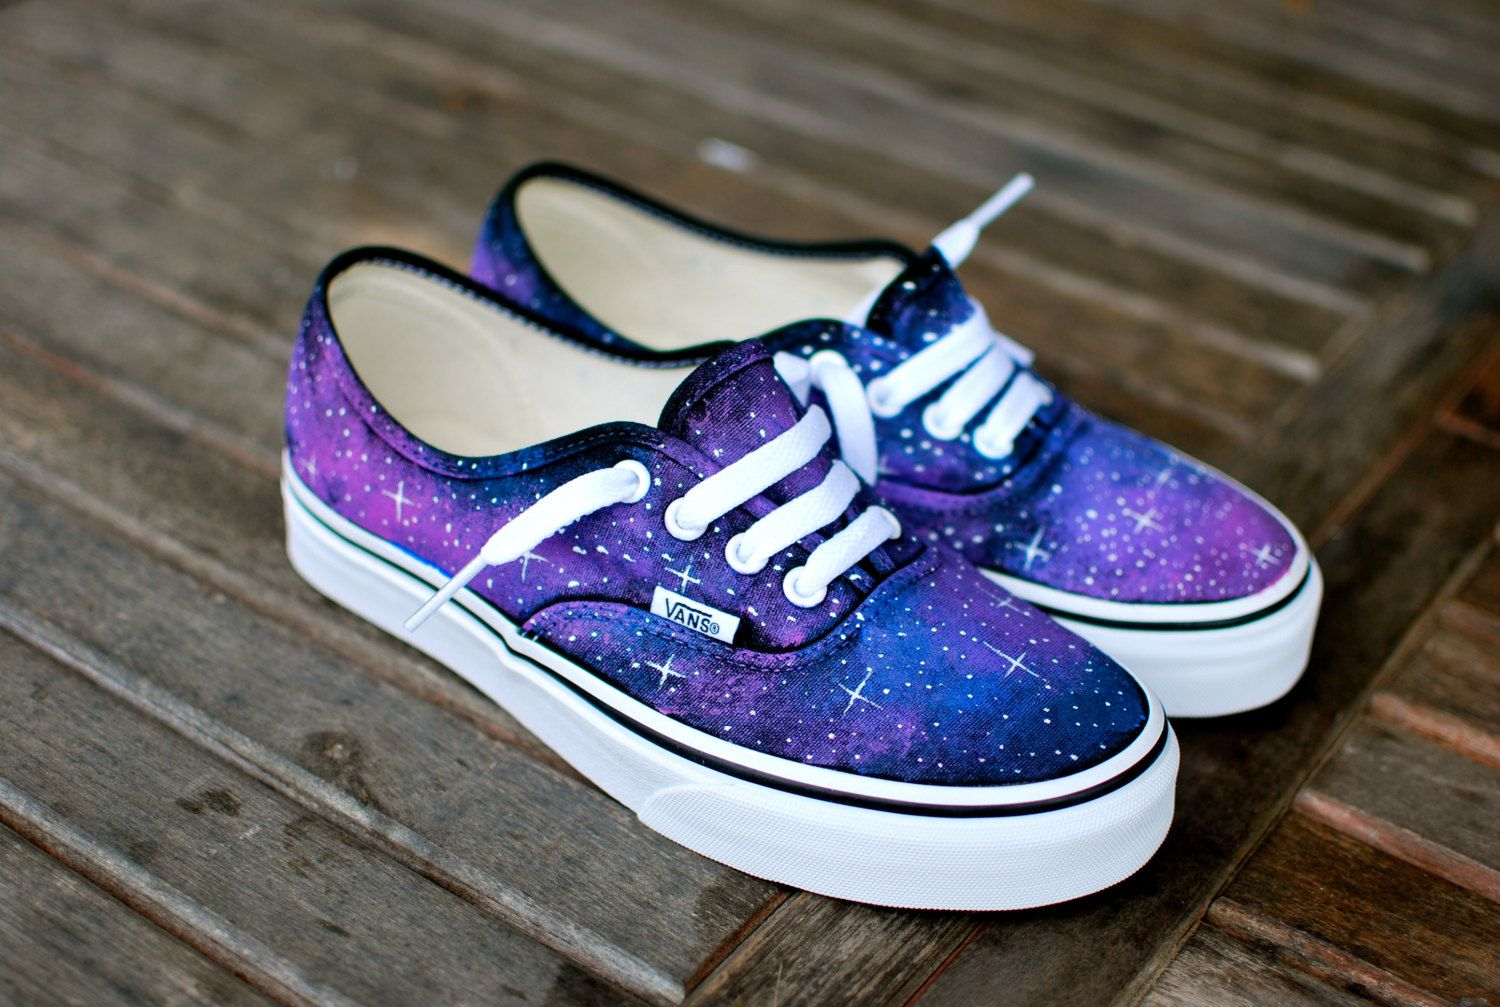 Galaxy Vans shoes by BStreetShoes on Etsy Also check out my